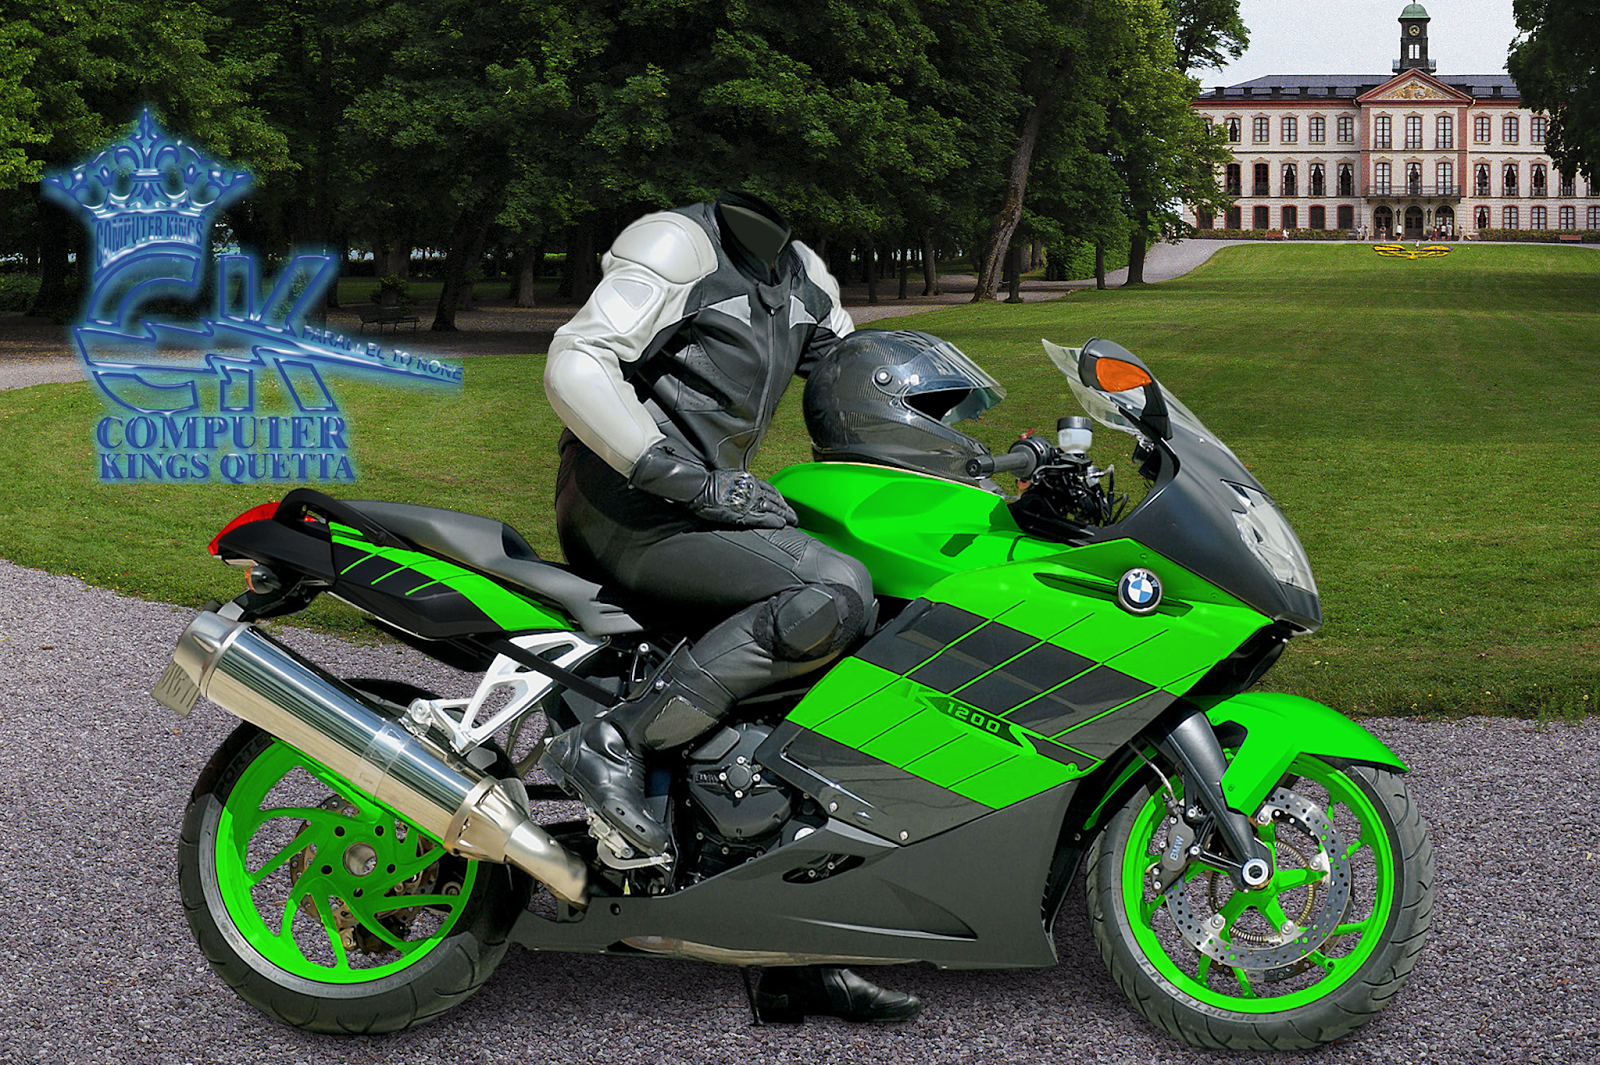 Photoshop Bike With Man Psd File Free Download ~ JK Software,s